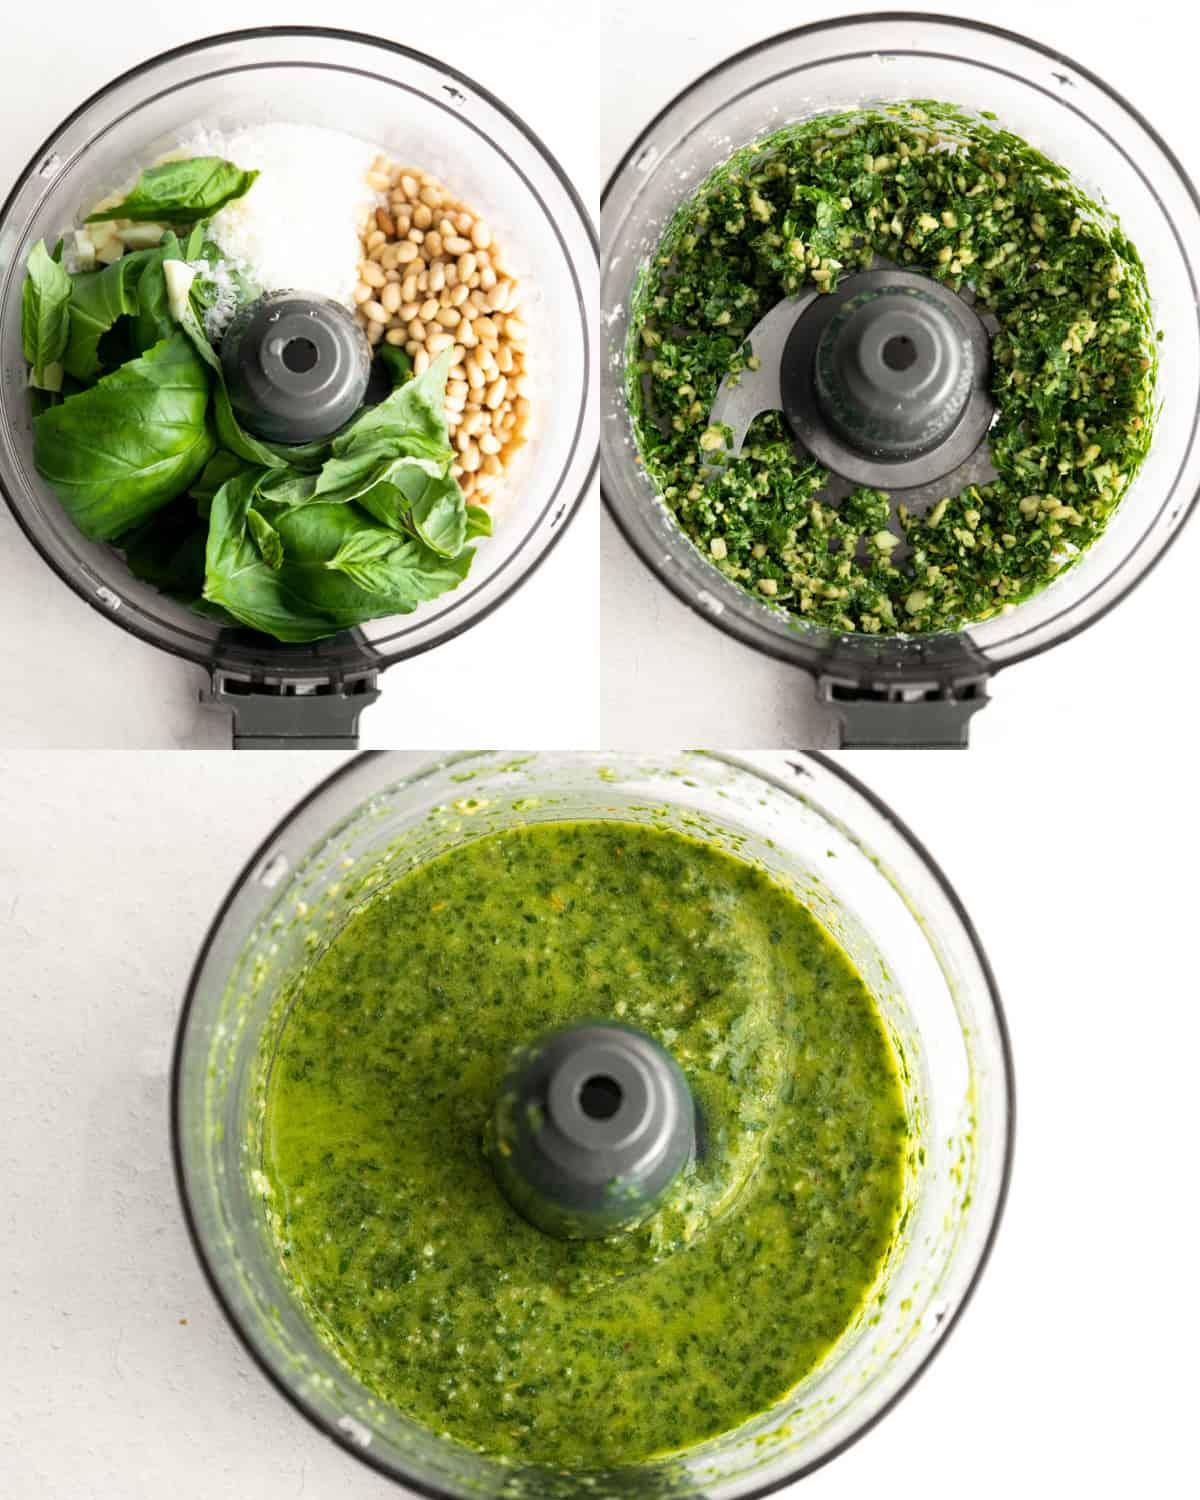 Three shots of basil pesto in a food processor, before during and after blending